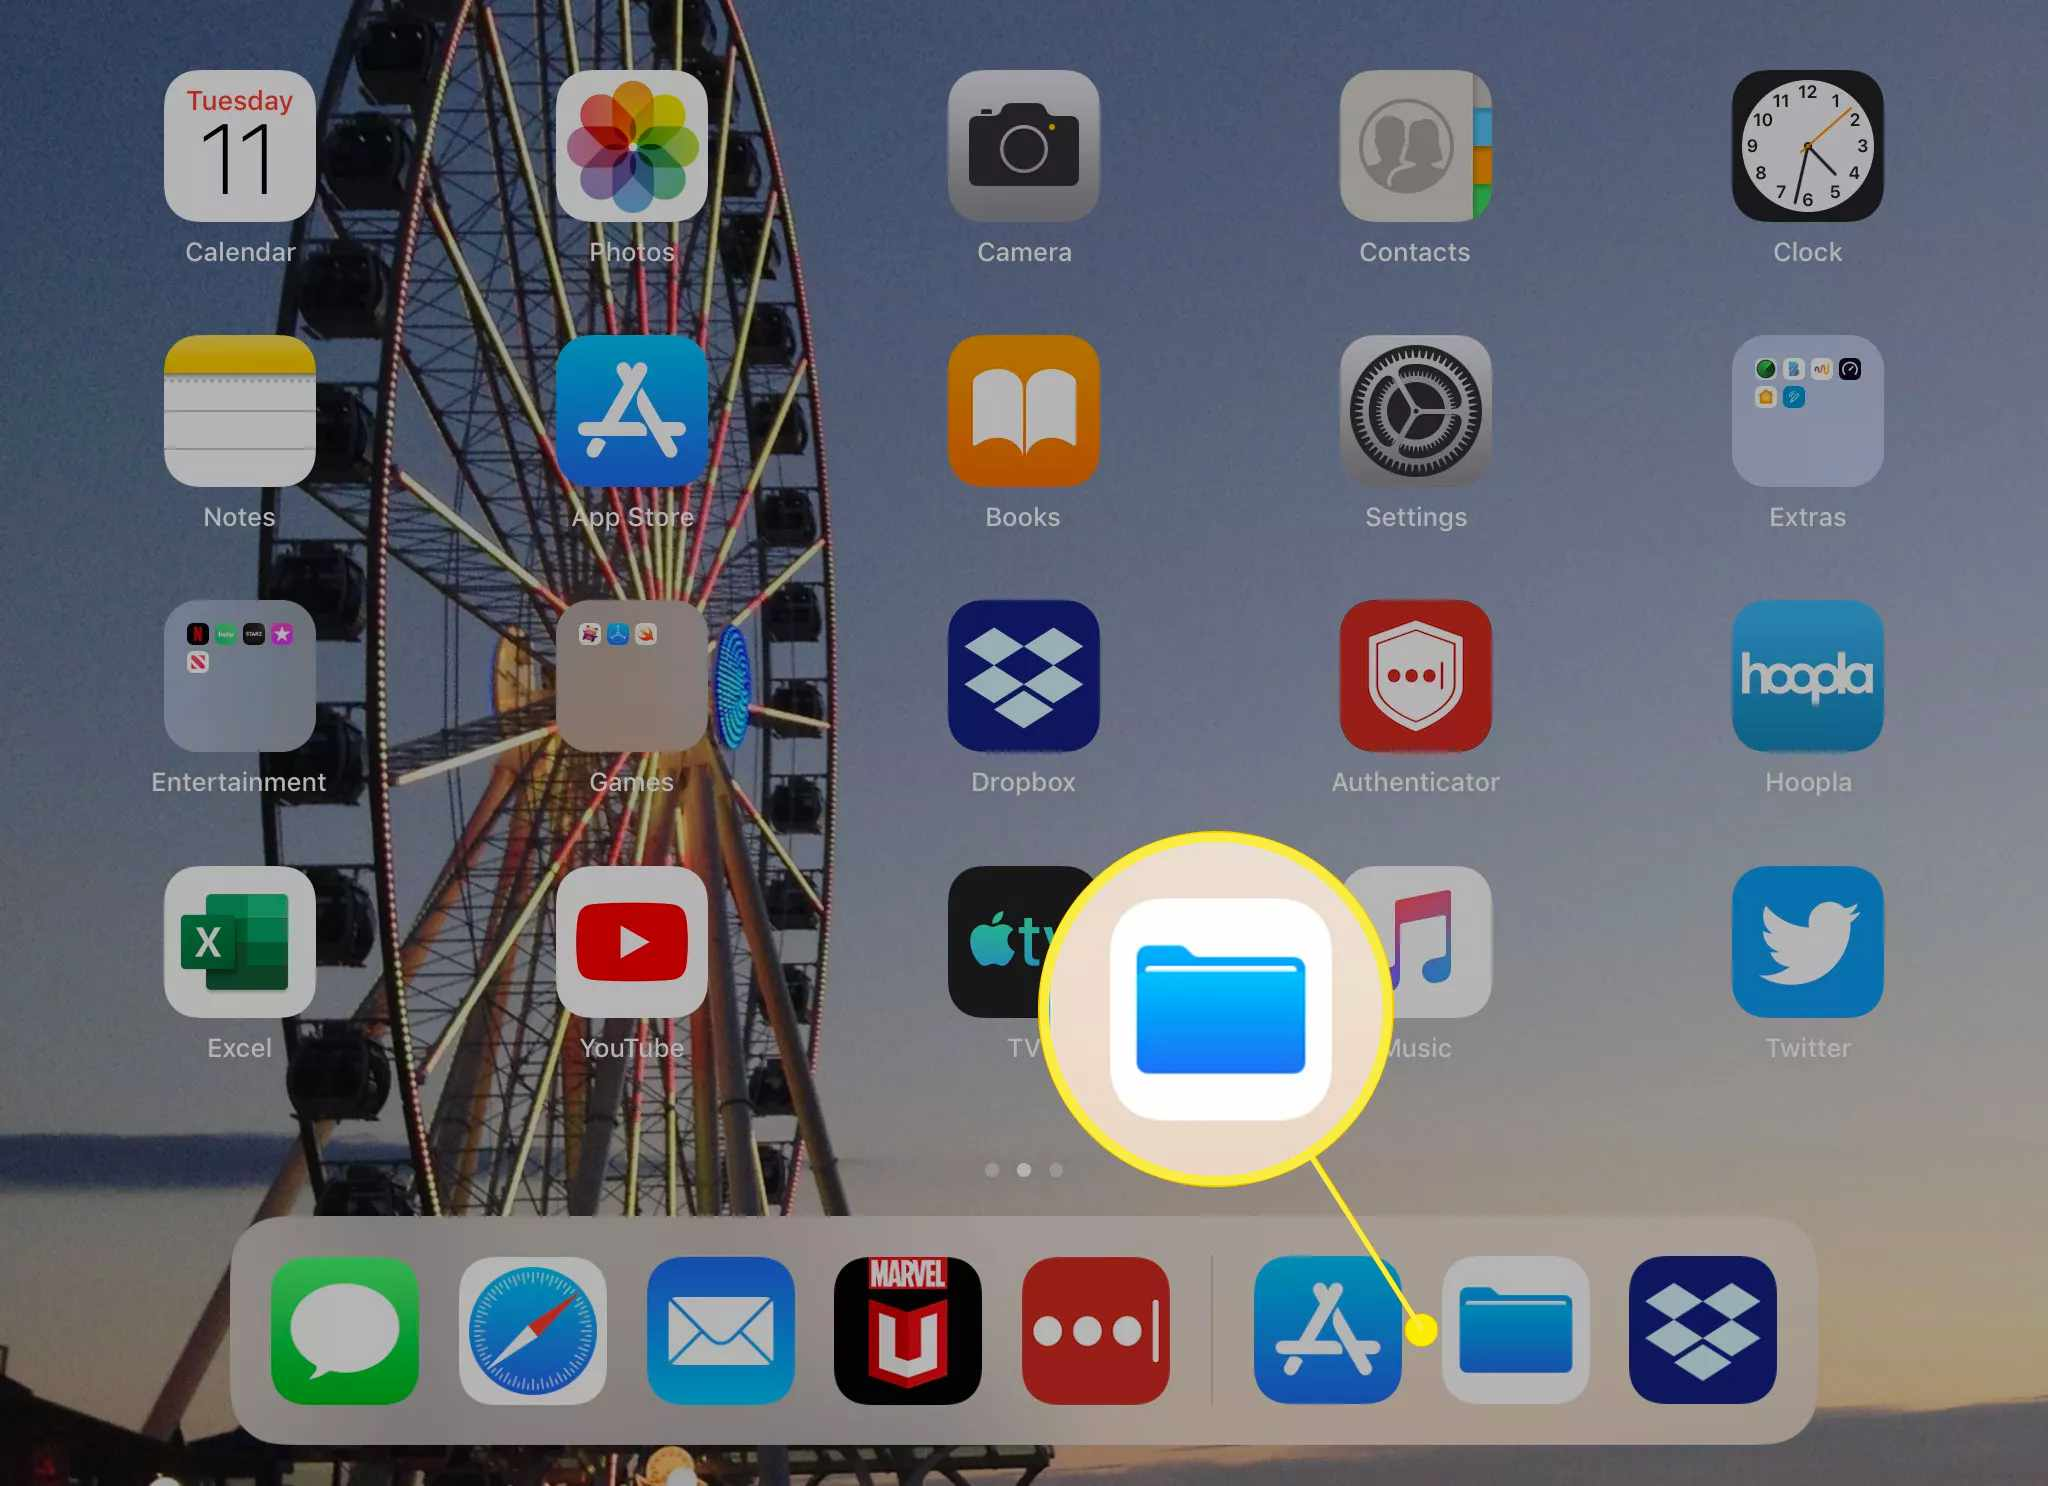 The Files app in iPadOS and iOS